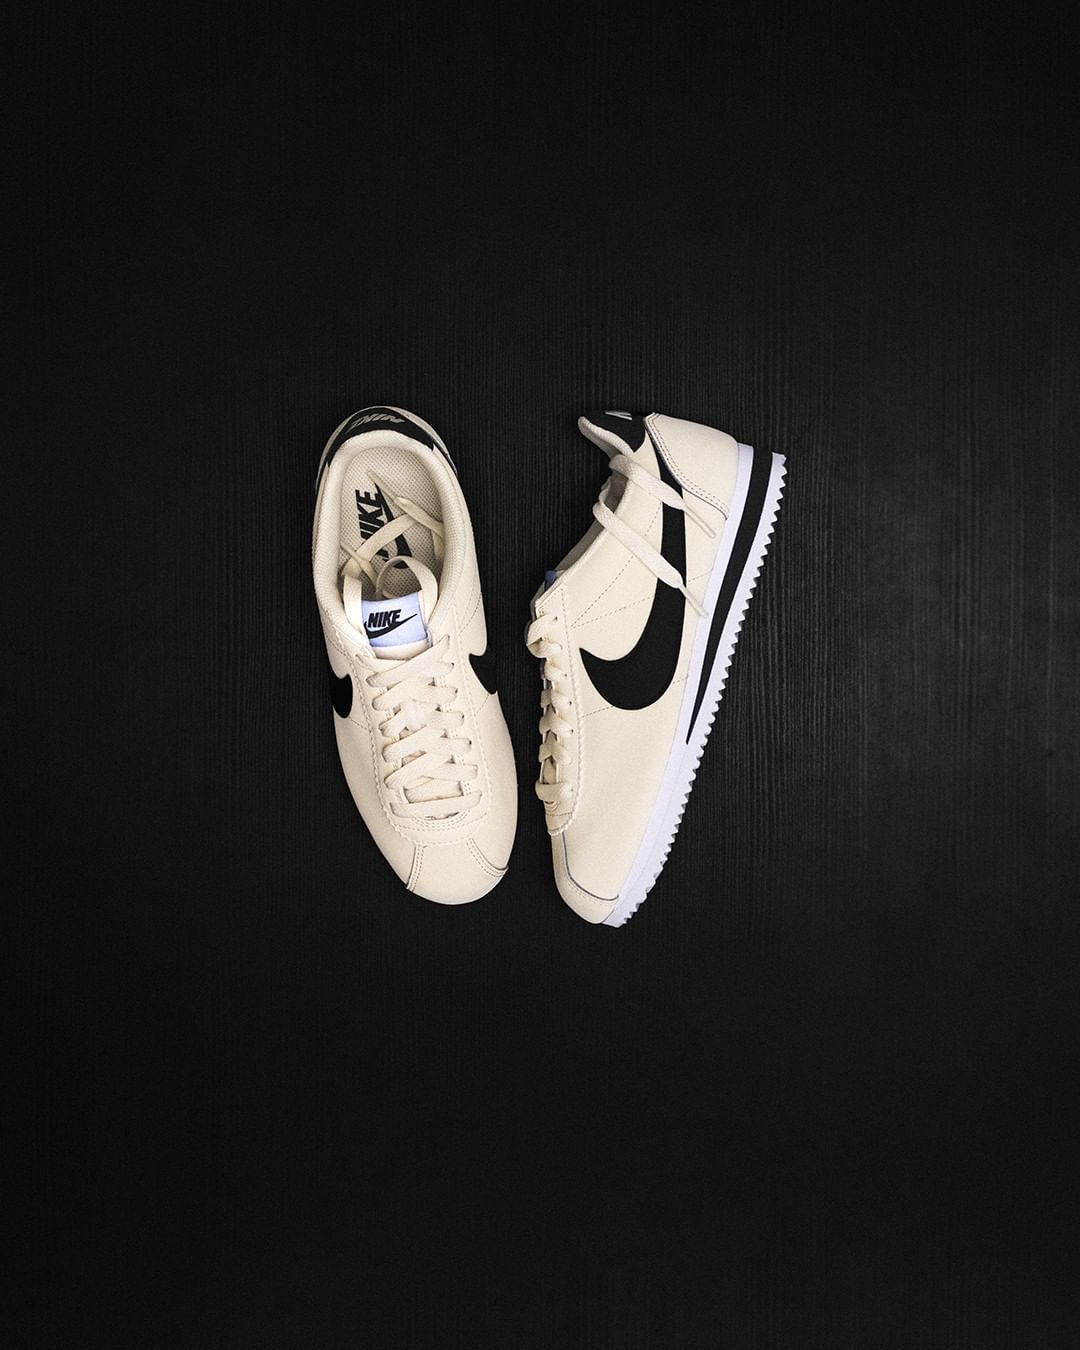 v creamy. #grailshop Nike Classic Cortez Leather in Pale